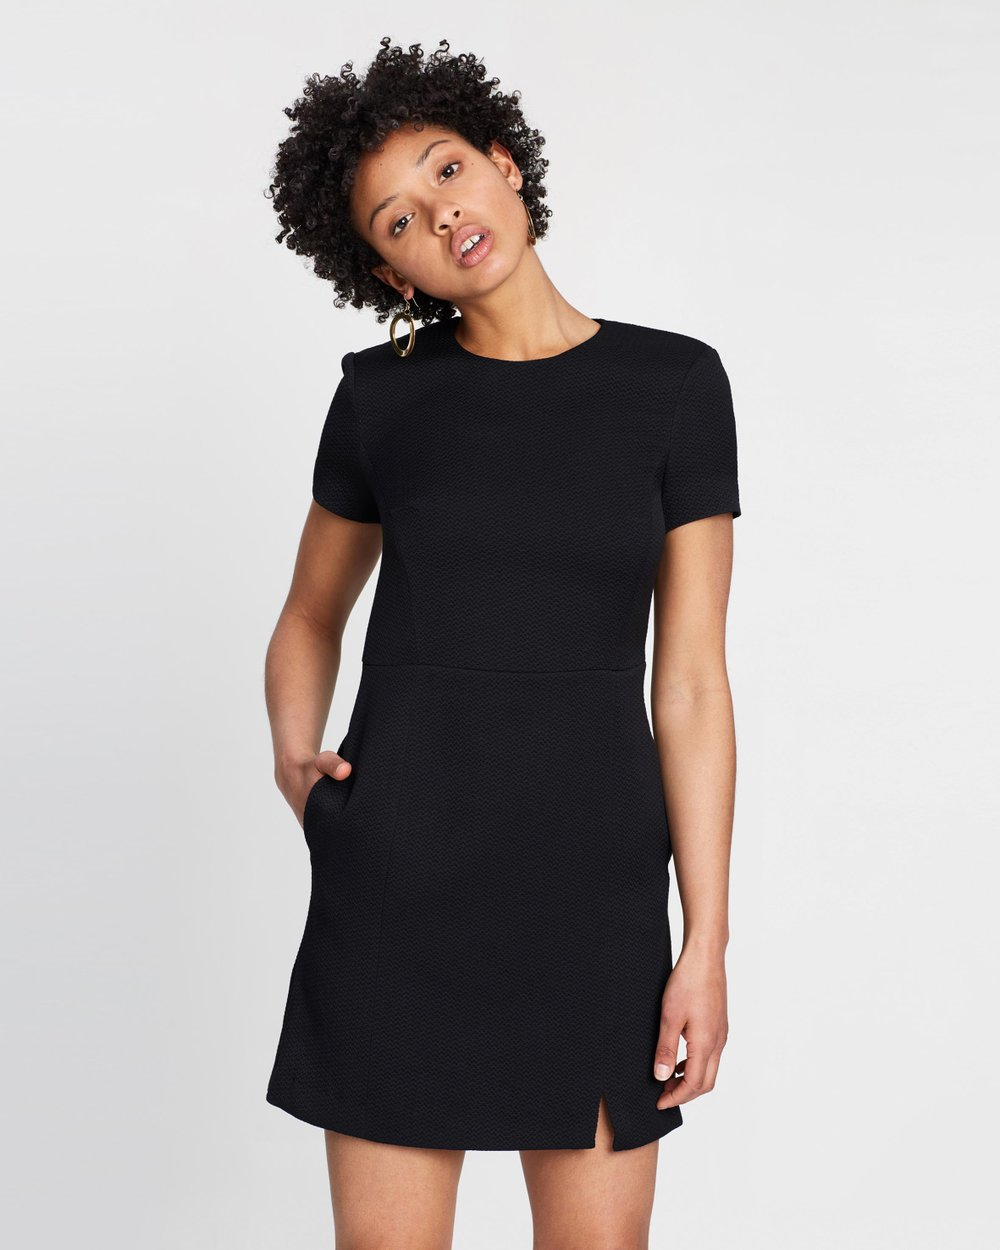 34b796041 Hua Textured Fitted Dress by French Connection Online | THE ICONIC |  Australia